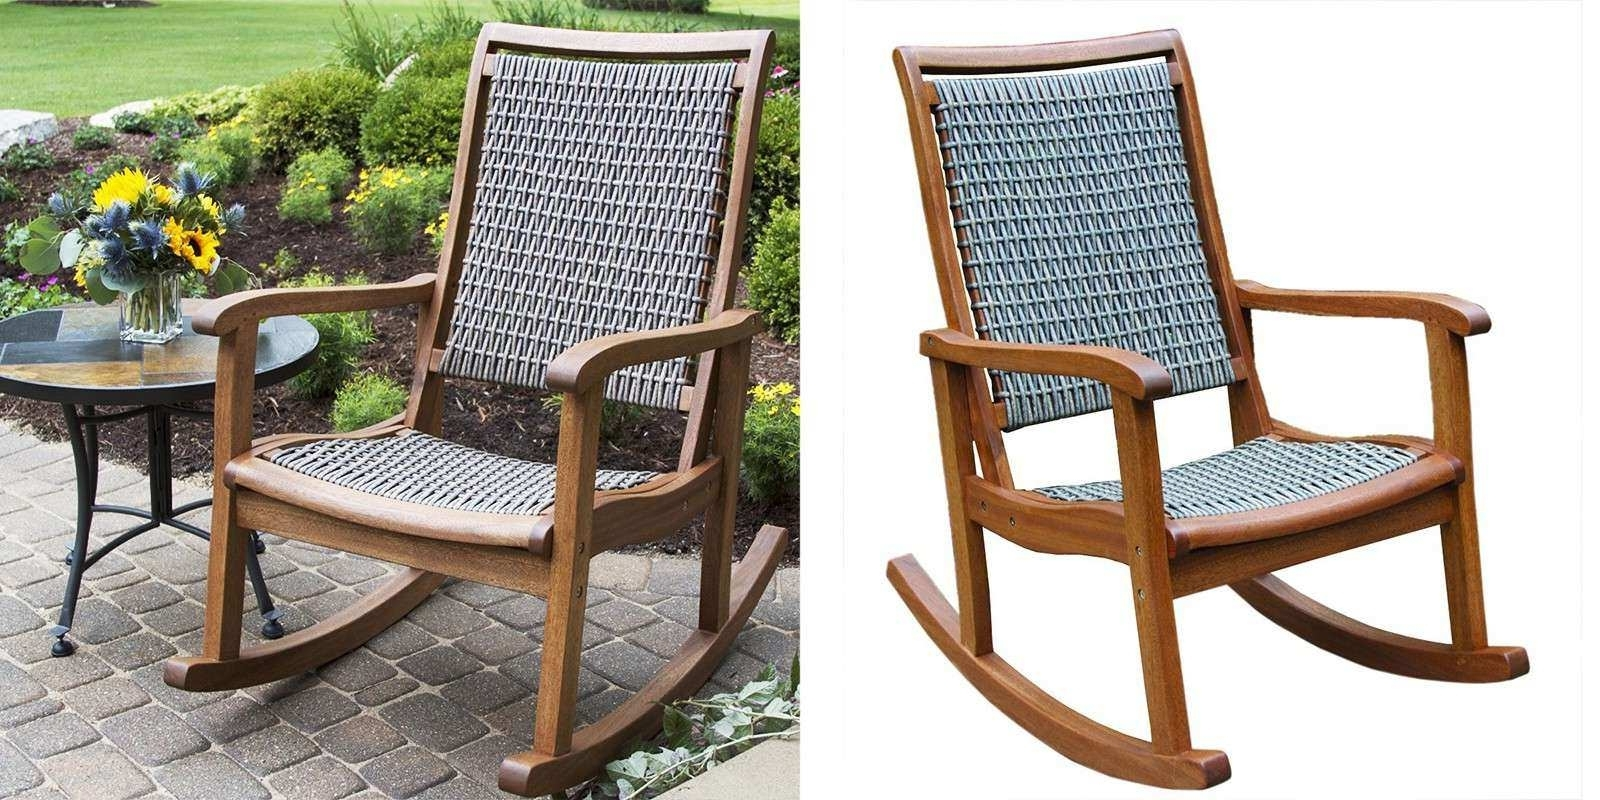 Modern Patio Rocking Chairs Throughout Well Known Resin Outdoor Furniture Awesome Resin Patio Rocking Chairs Modern (View 13 of 20)